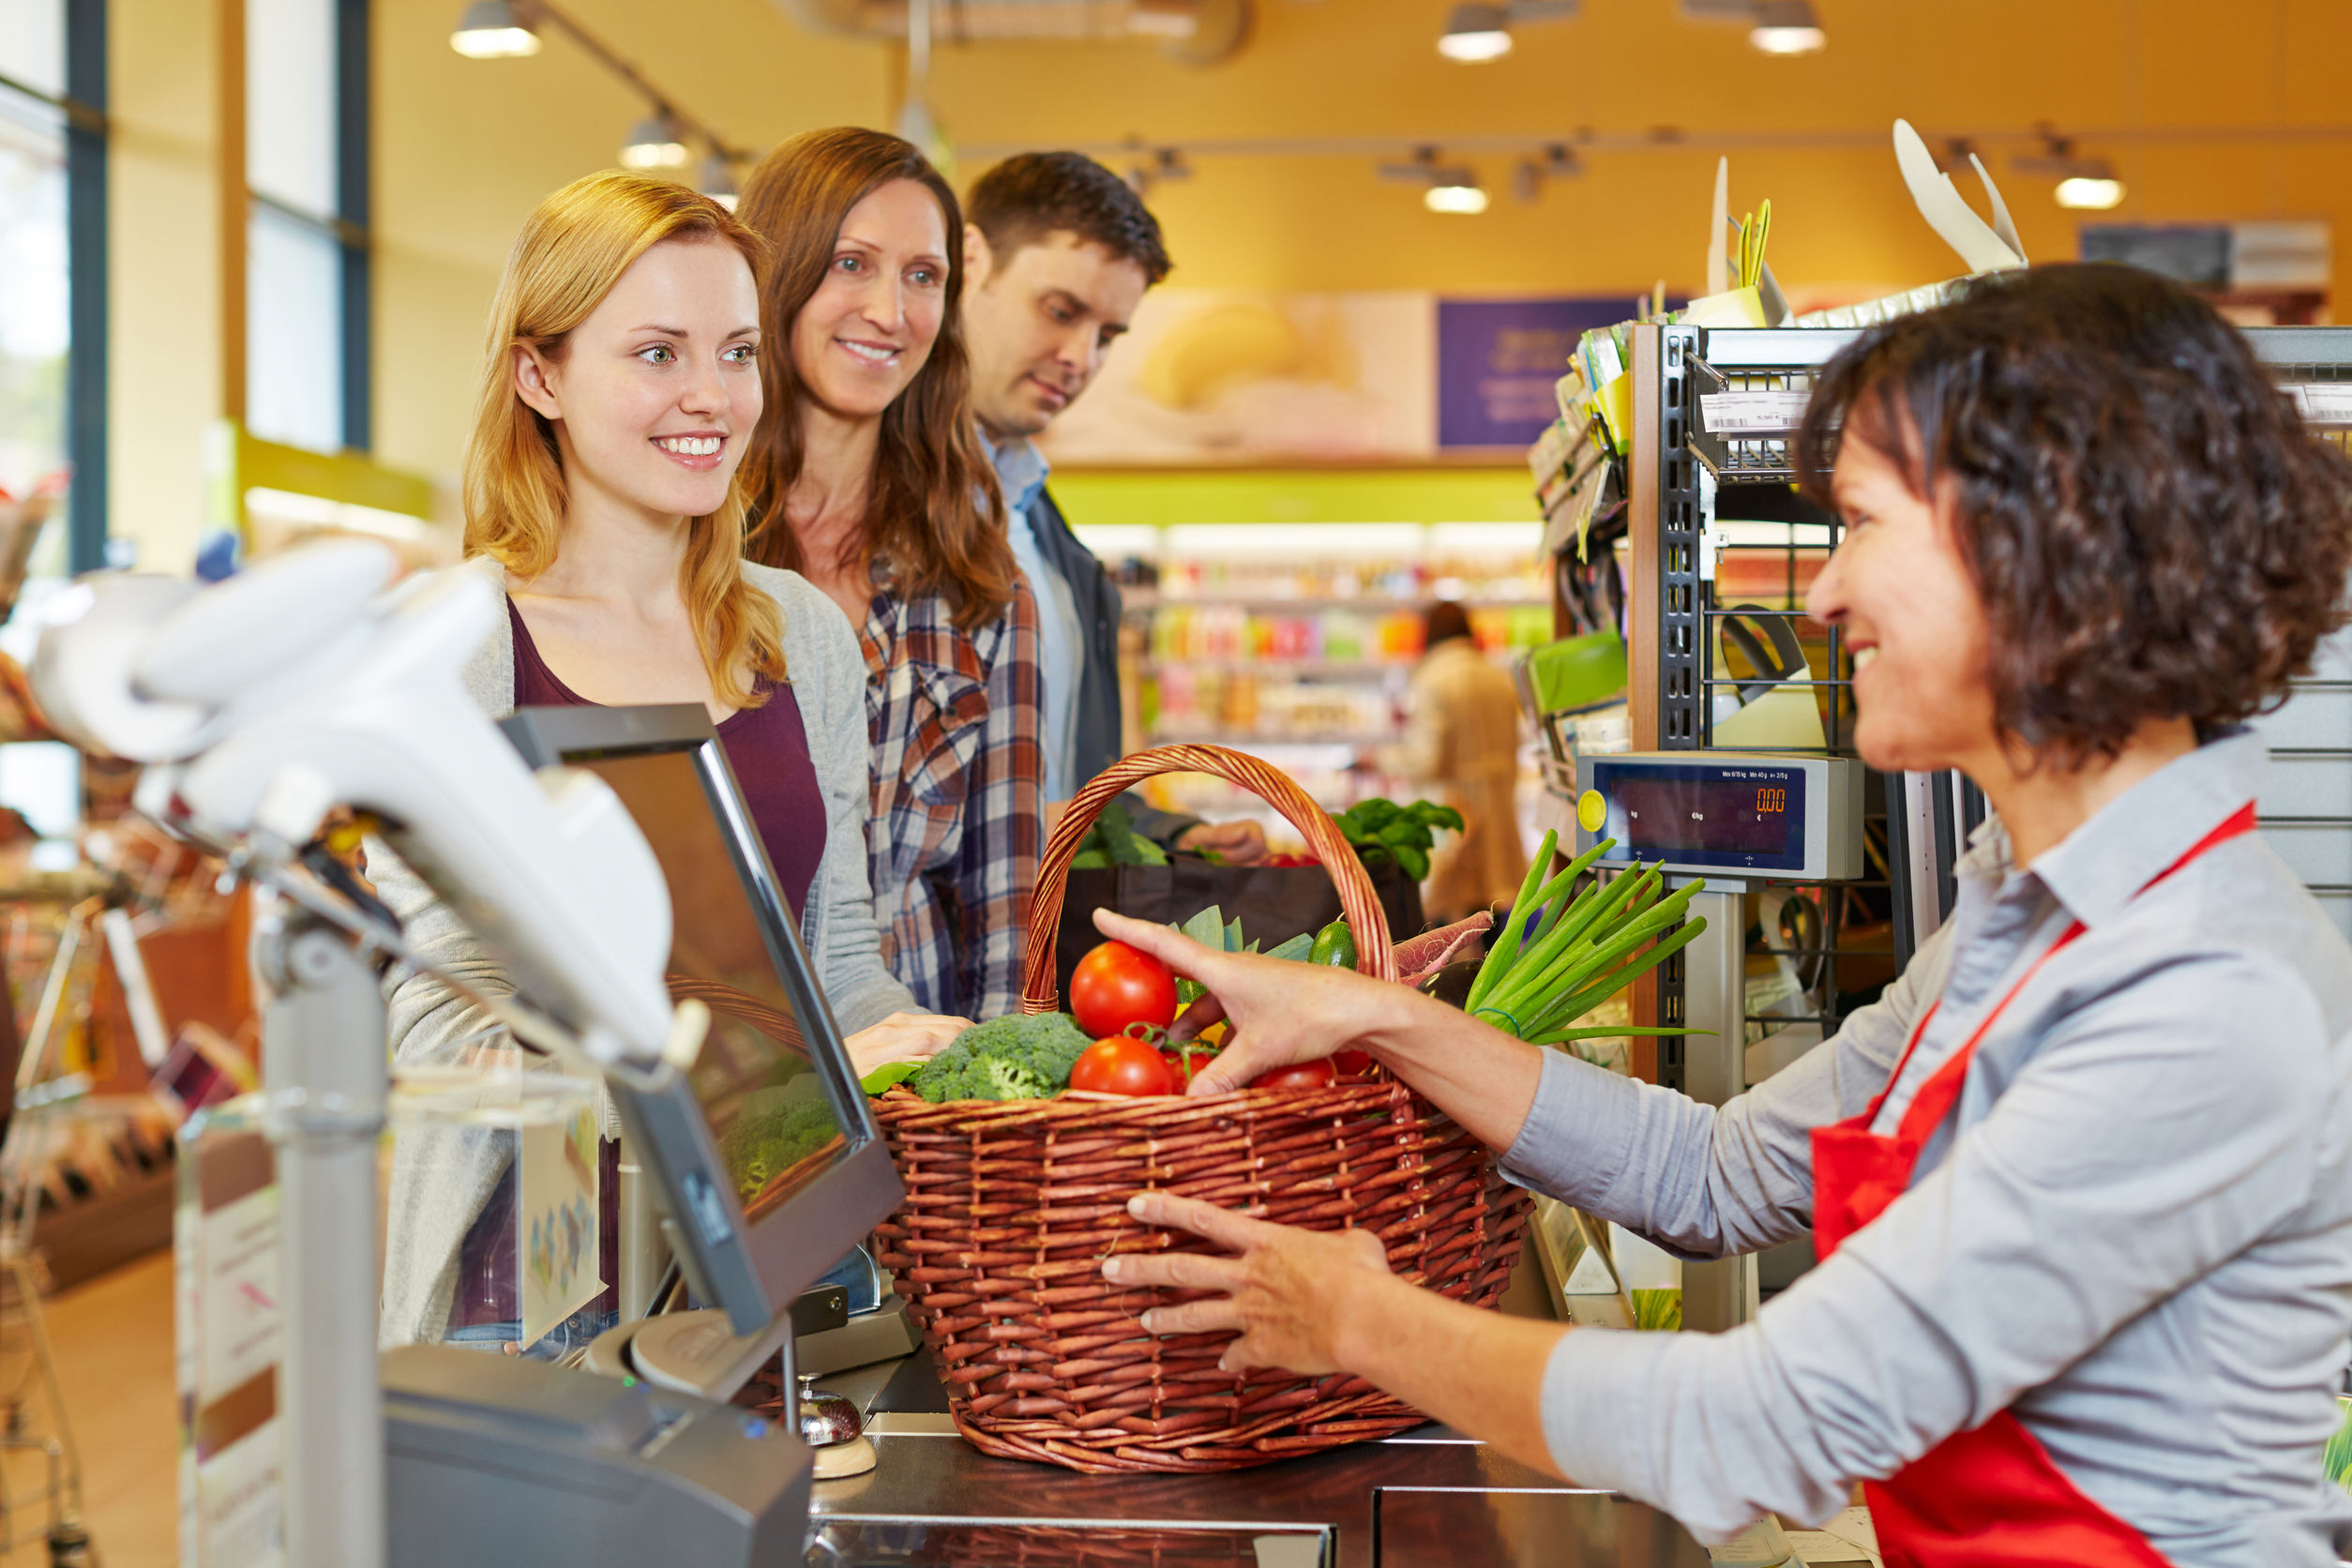 29682877 - young woman paying basket of groceries at supermarket checkout